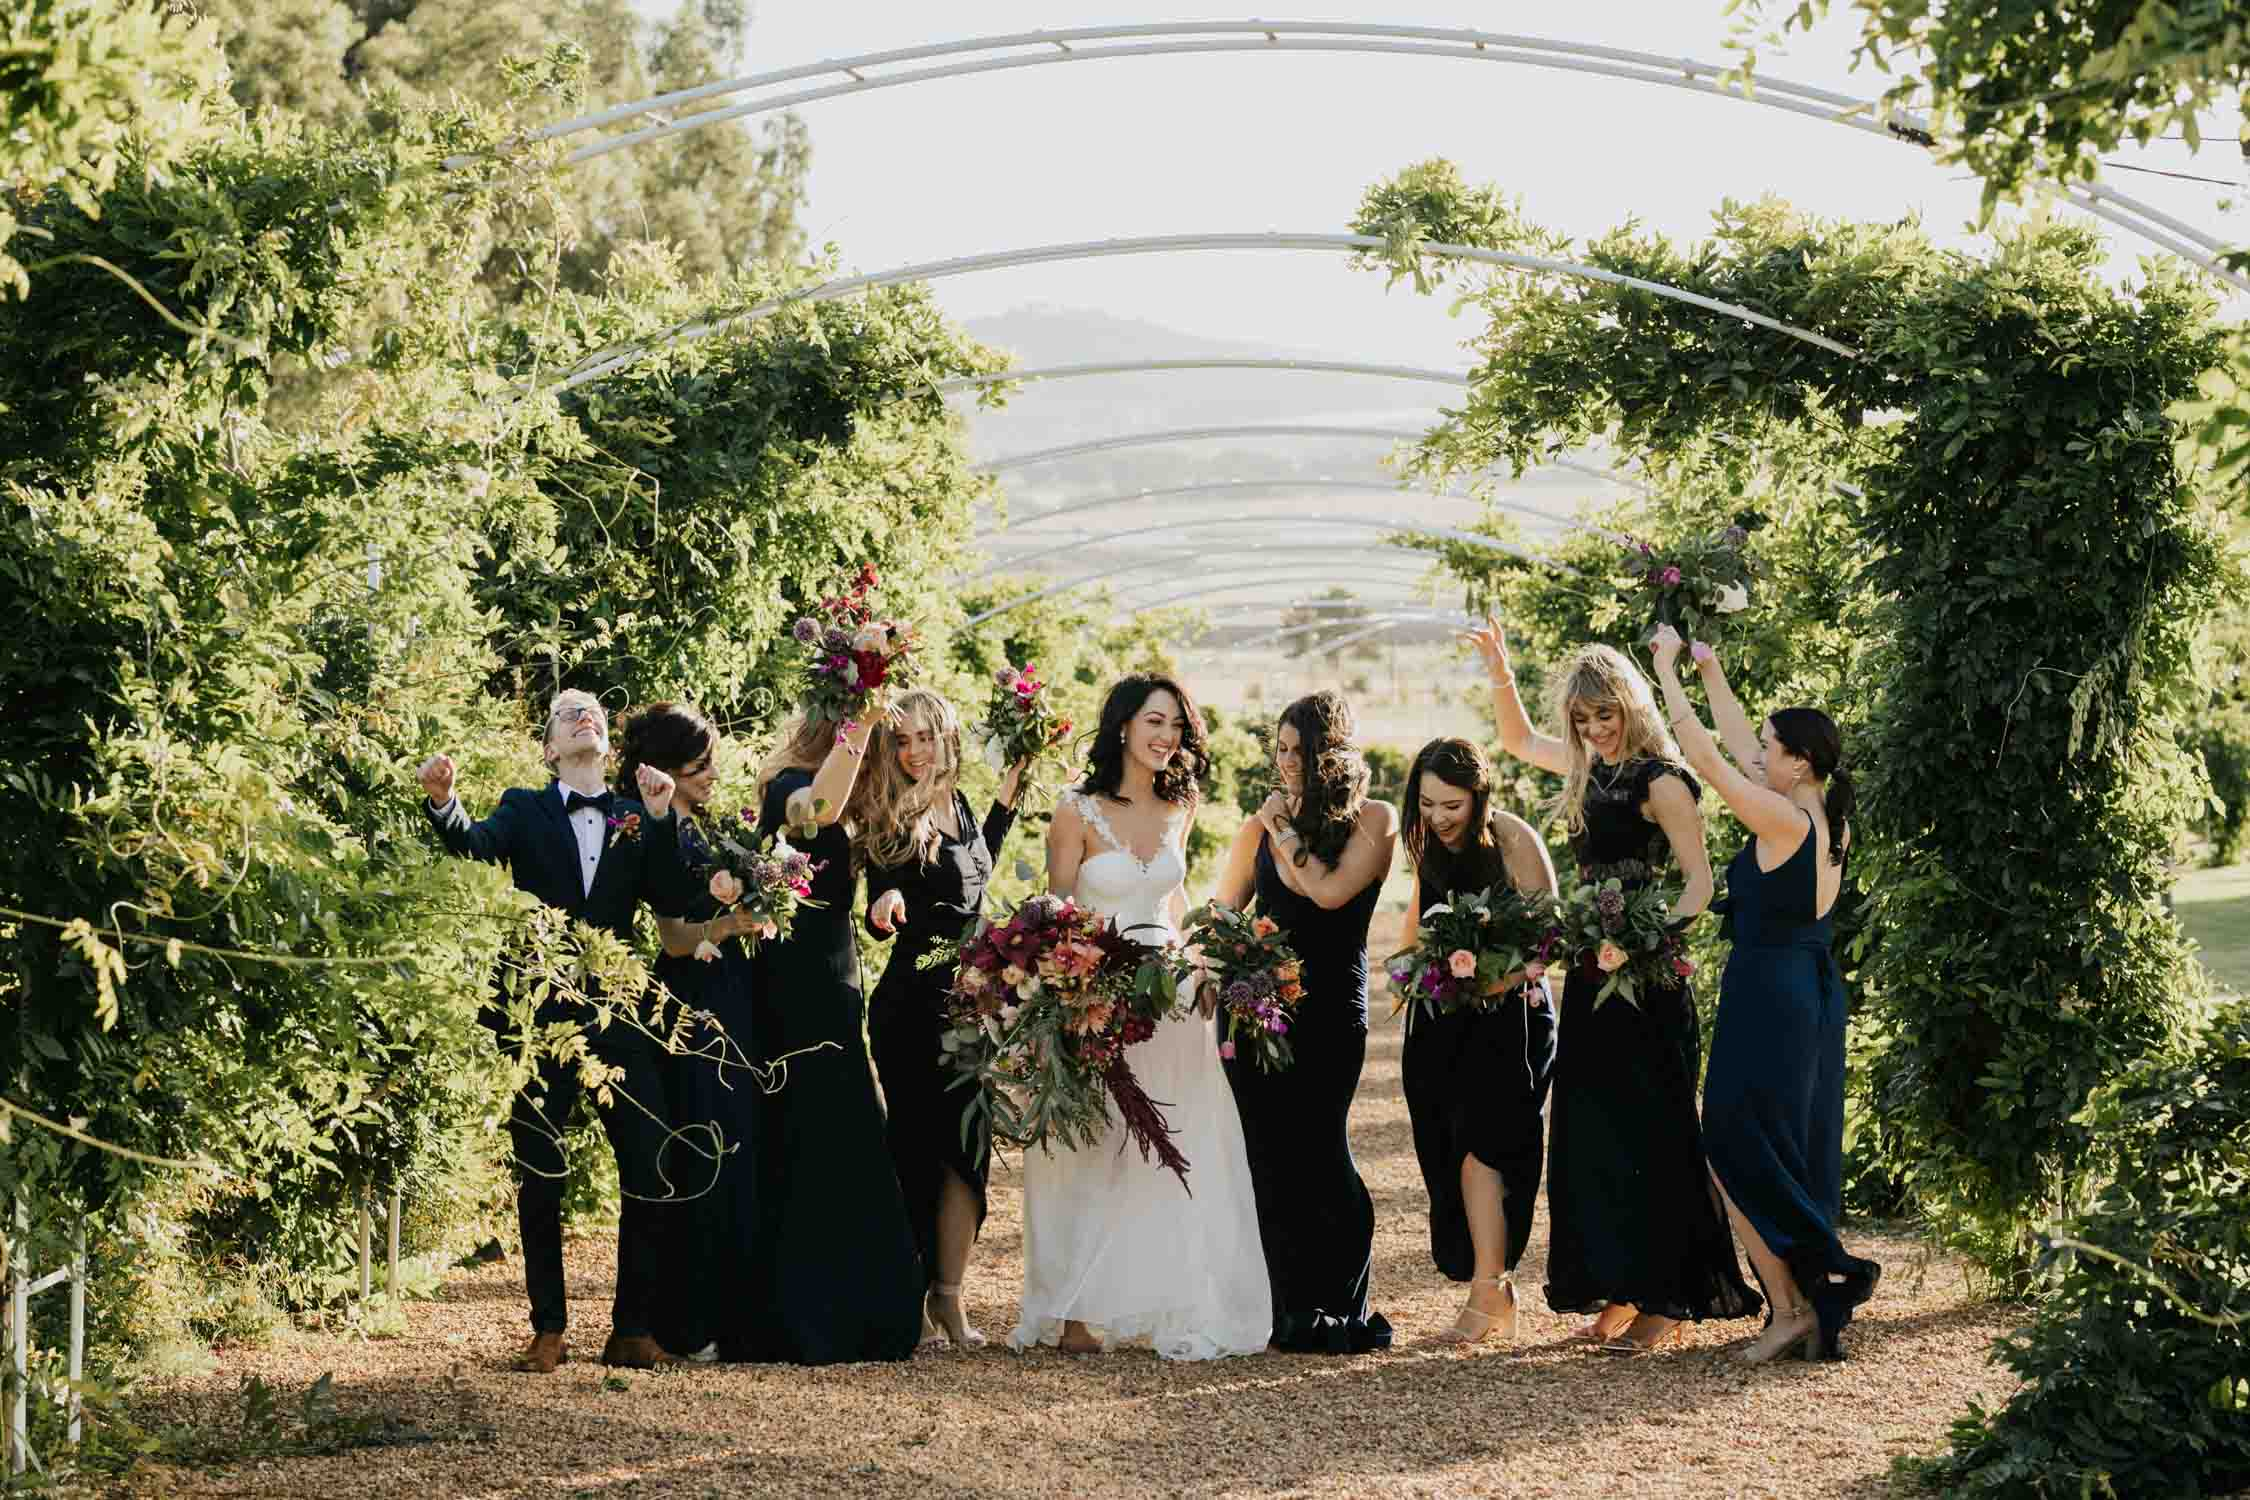 Fun non cheesy bridal party photo ideas